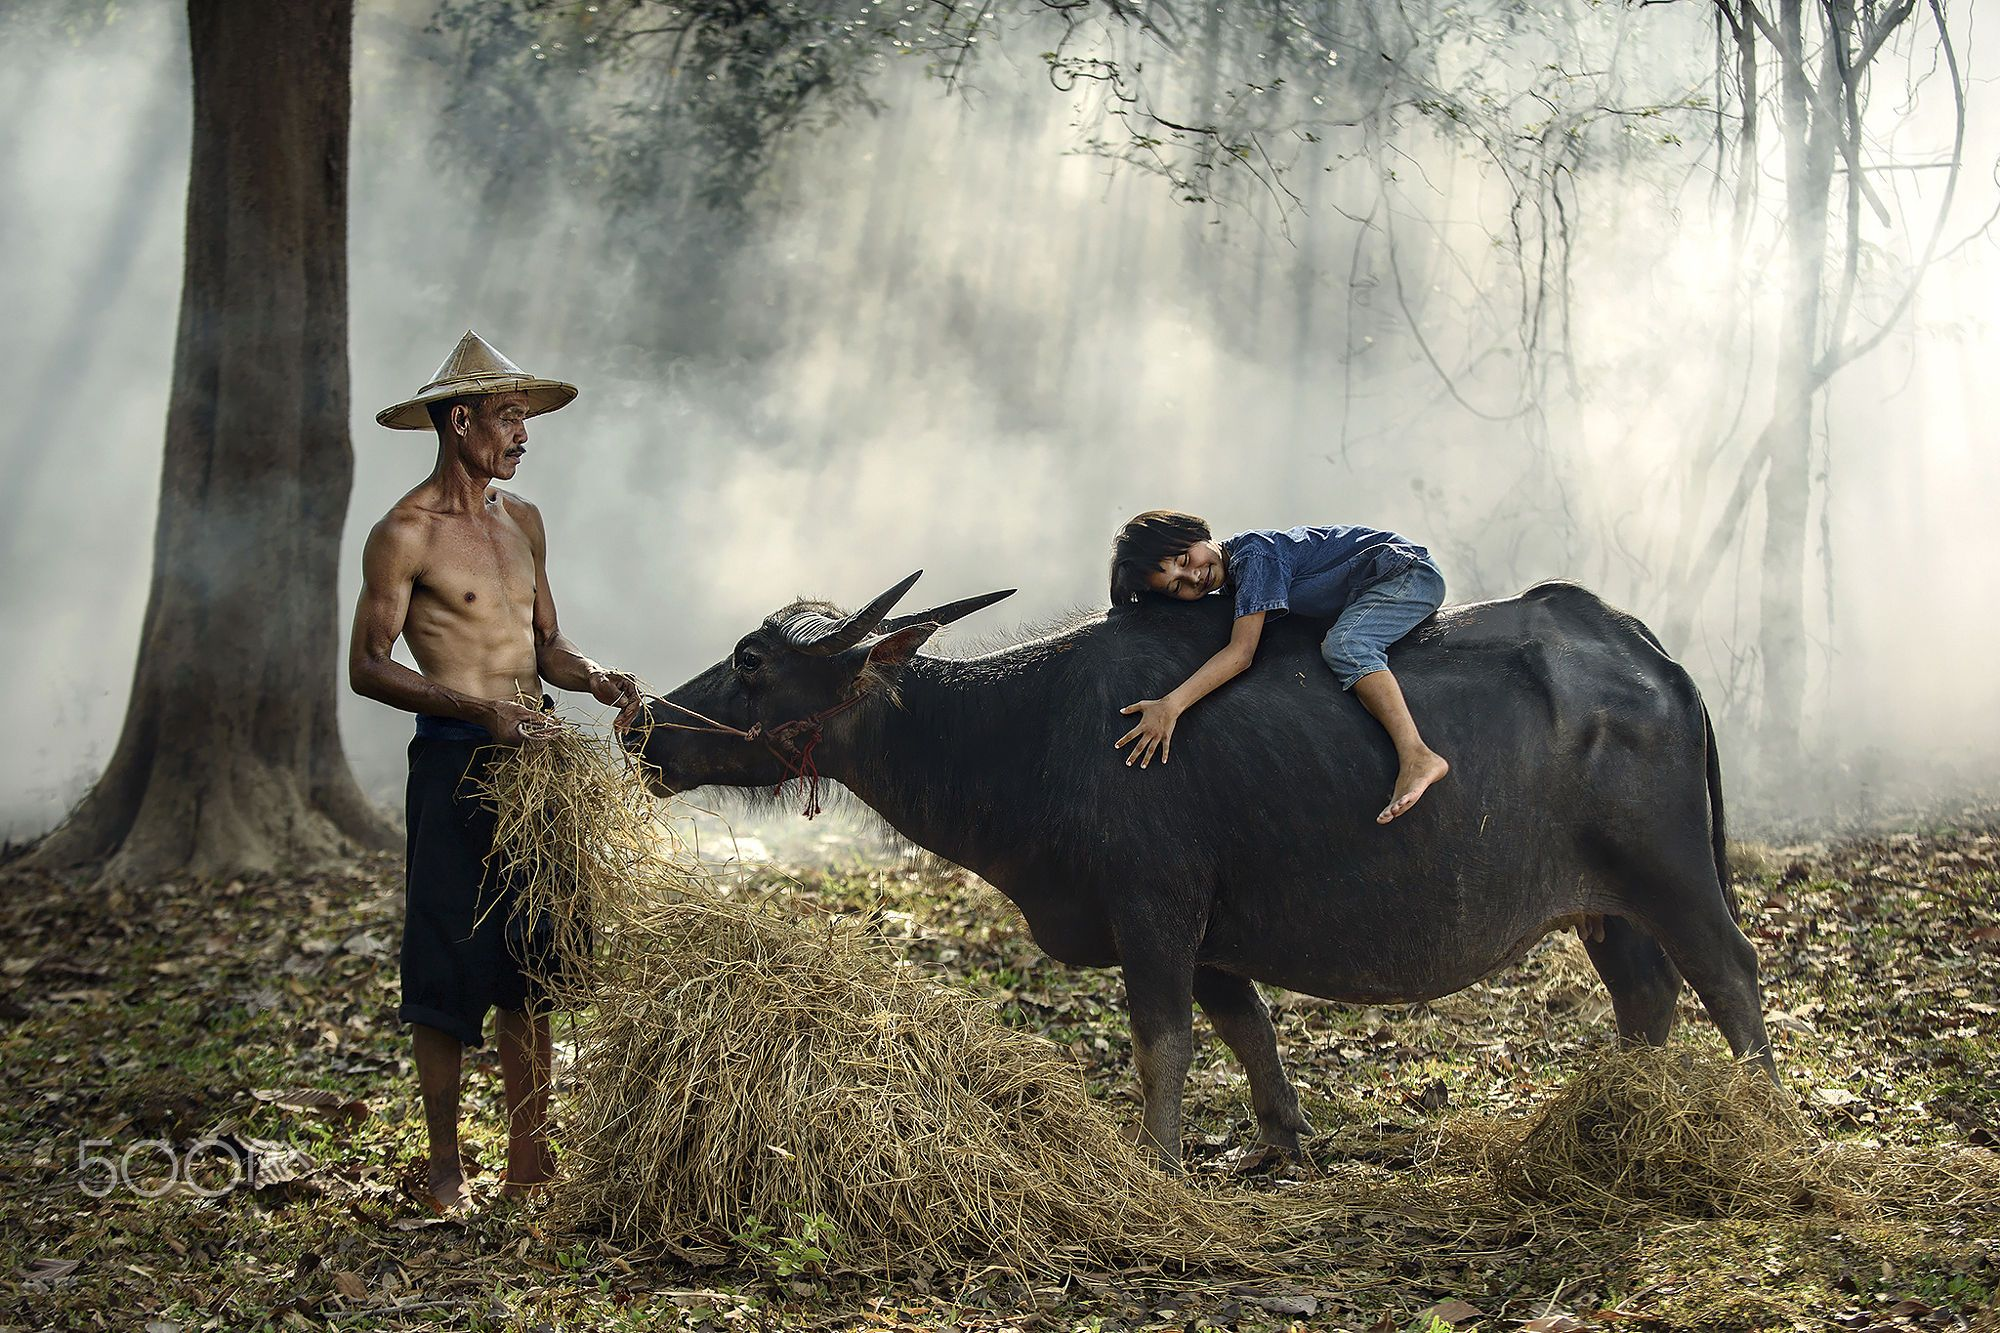 farmer and Daughter by Chadchai Ra-ngubpai on 500px